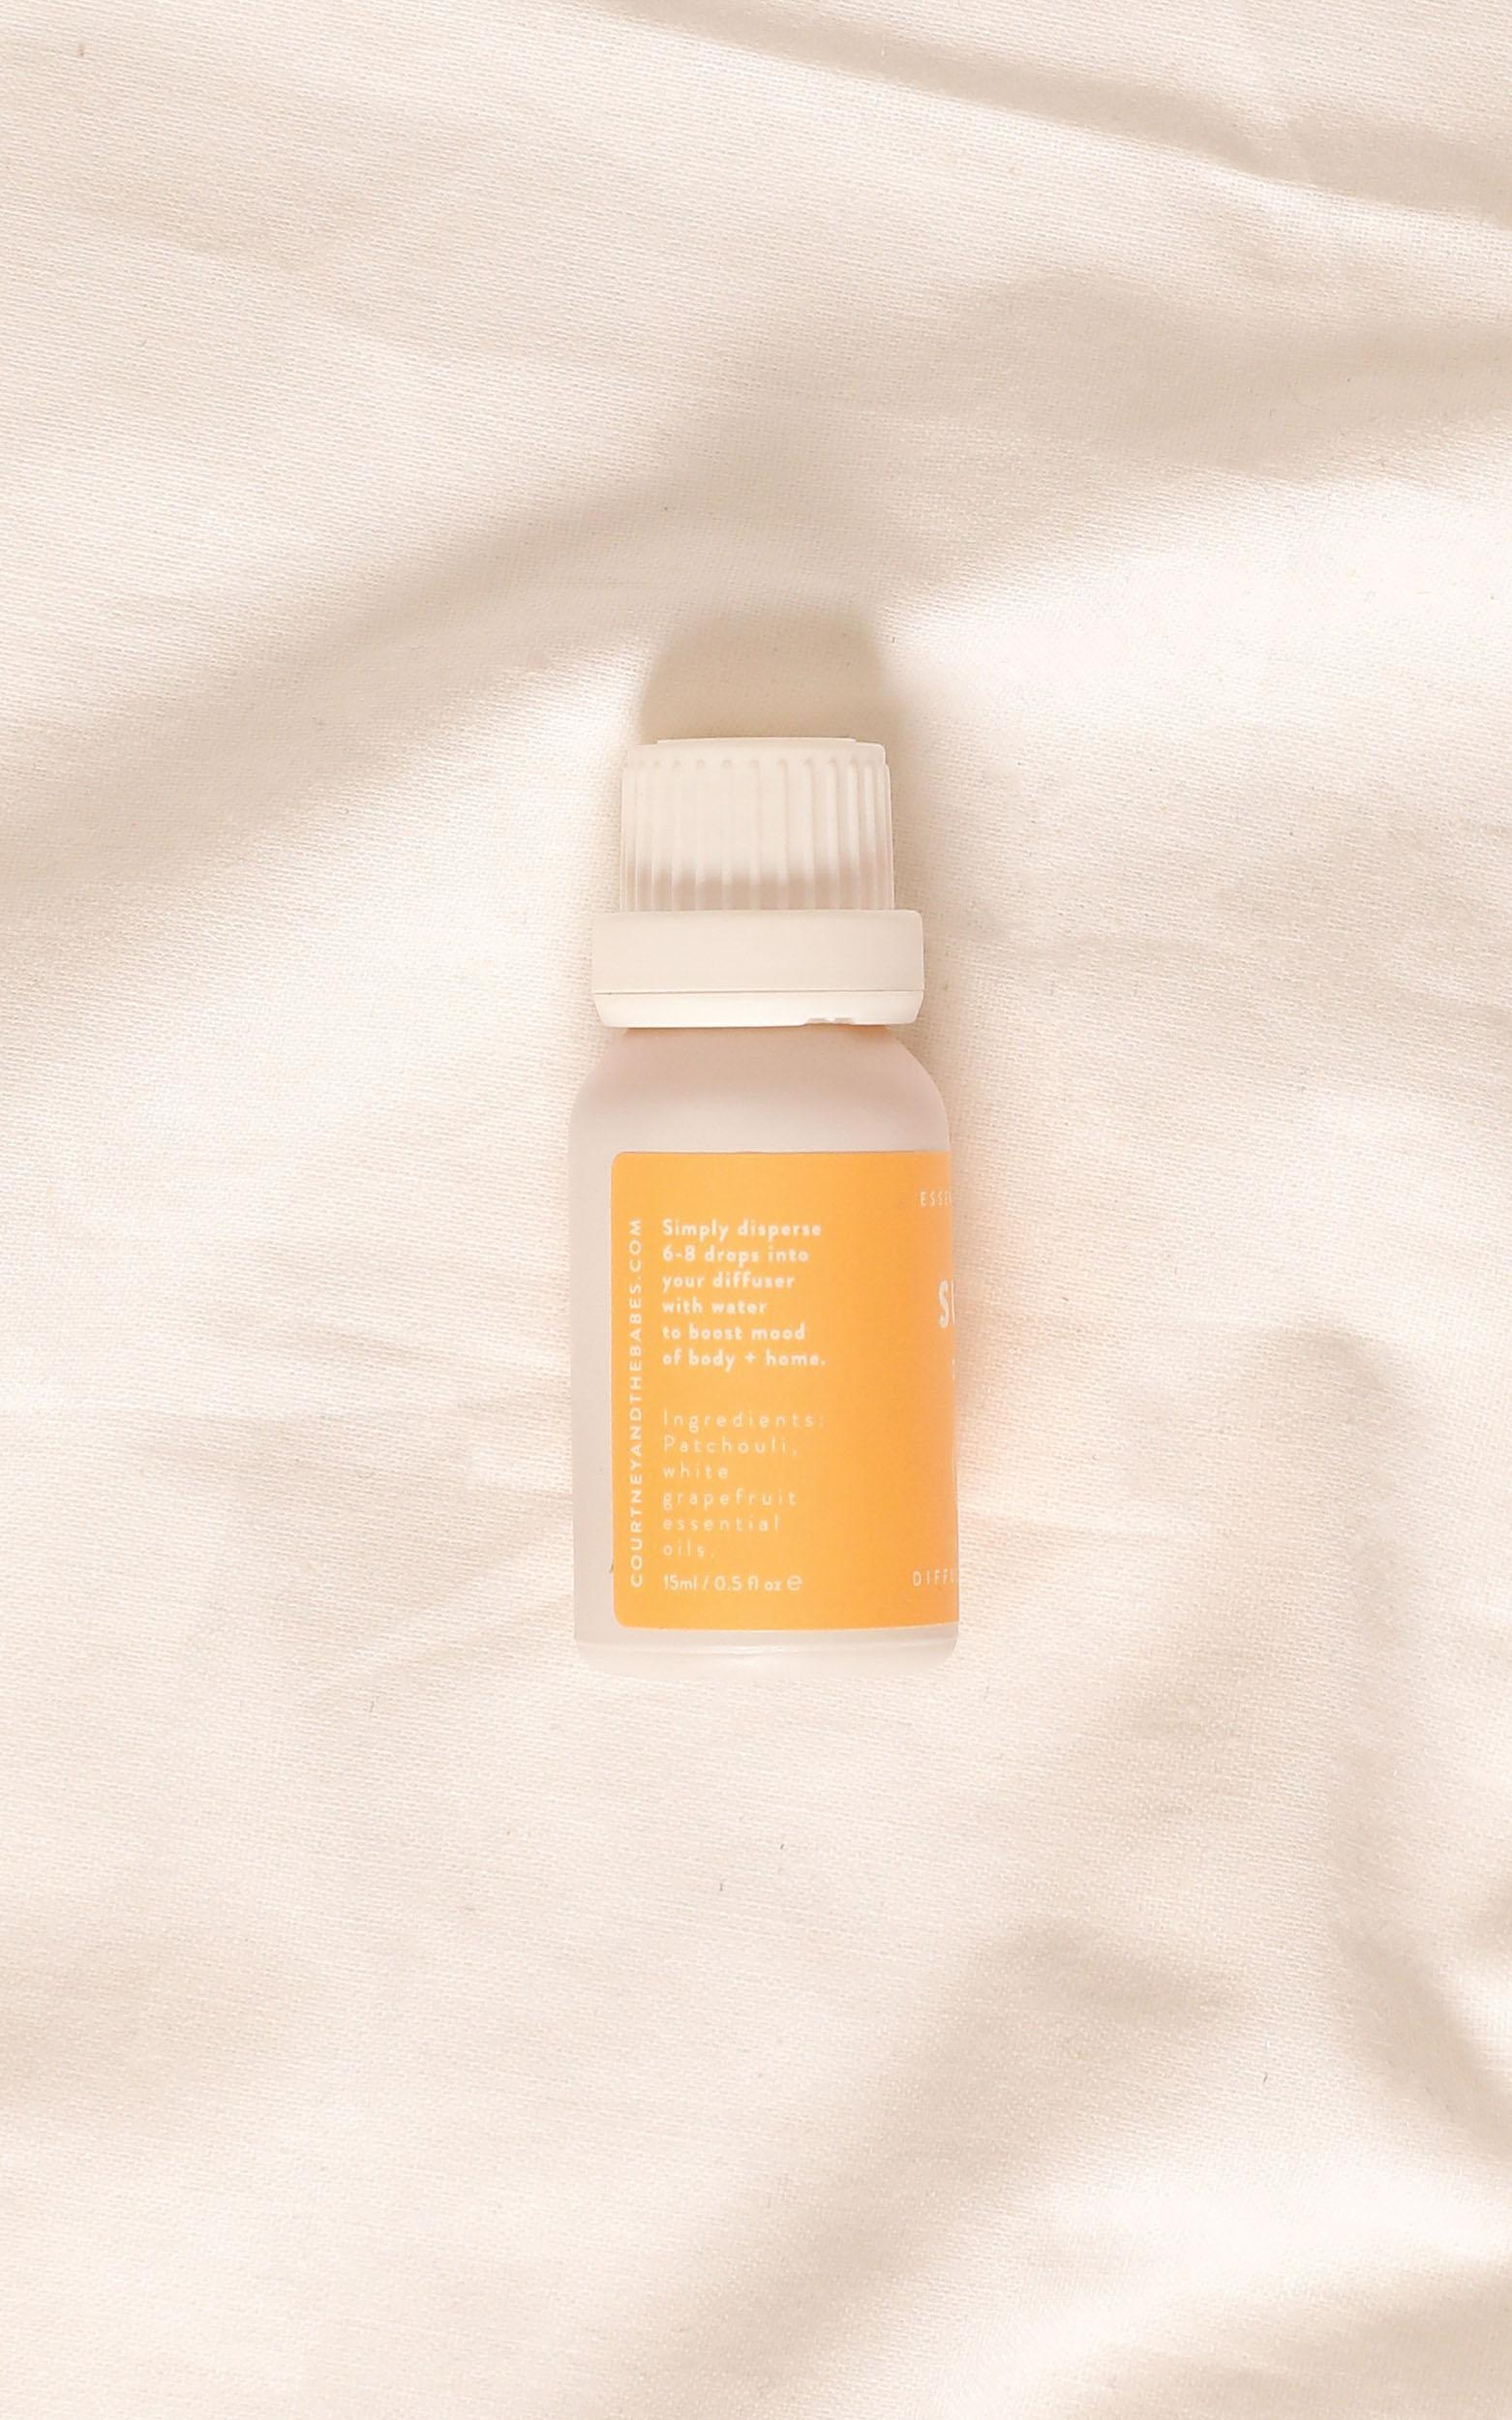 Courtney + Babes - Sun Diffuser Blend 15ml, Yellow, hi-res image number null